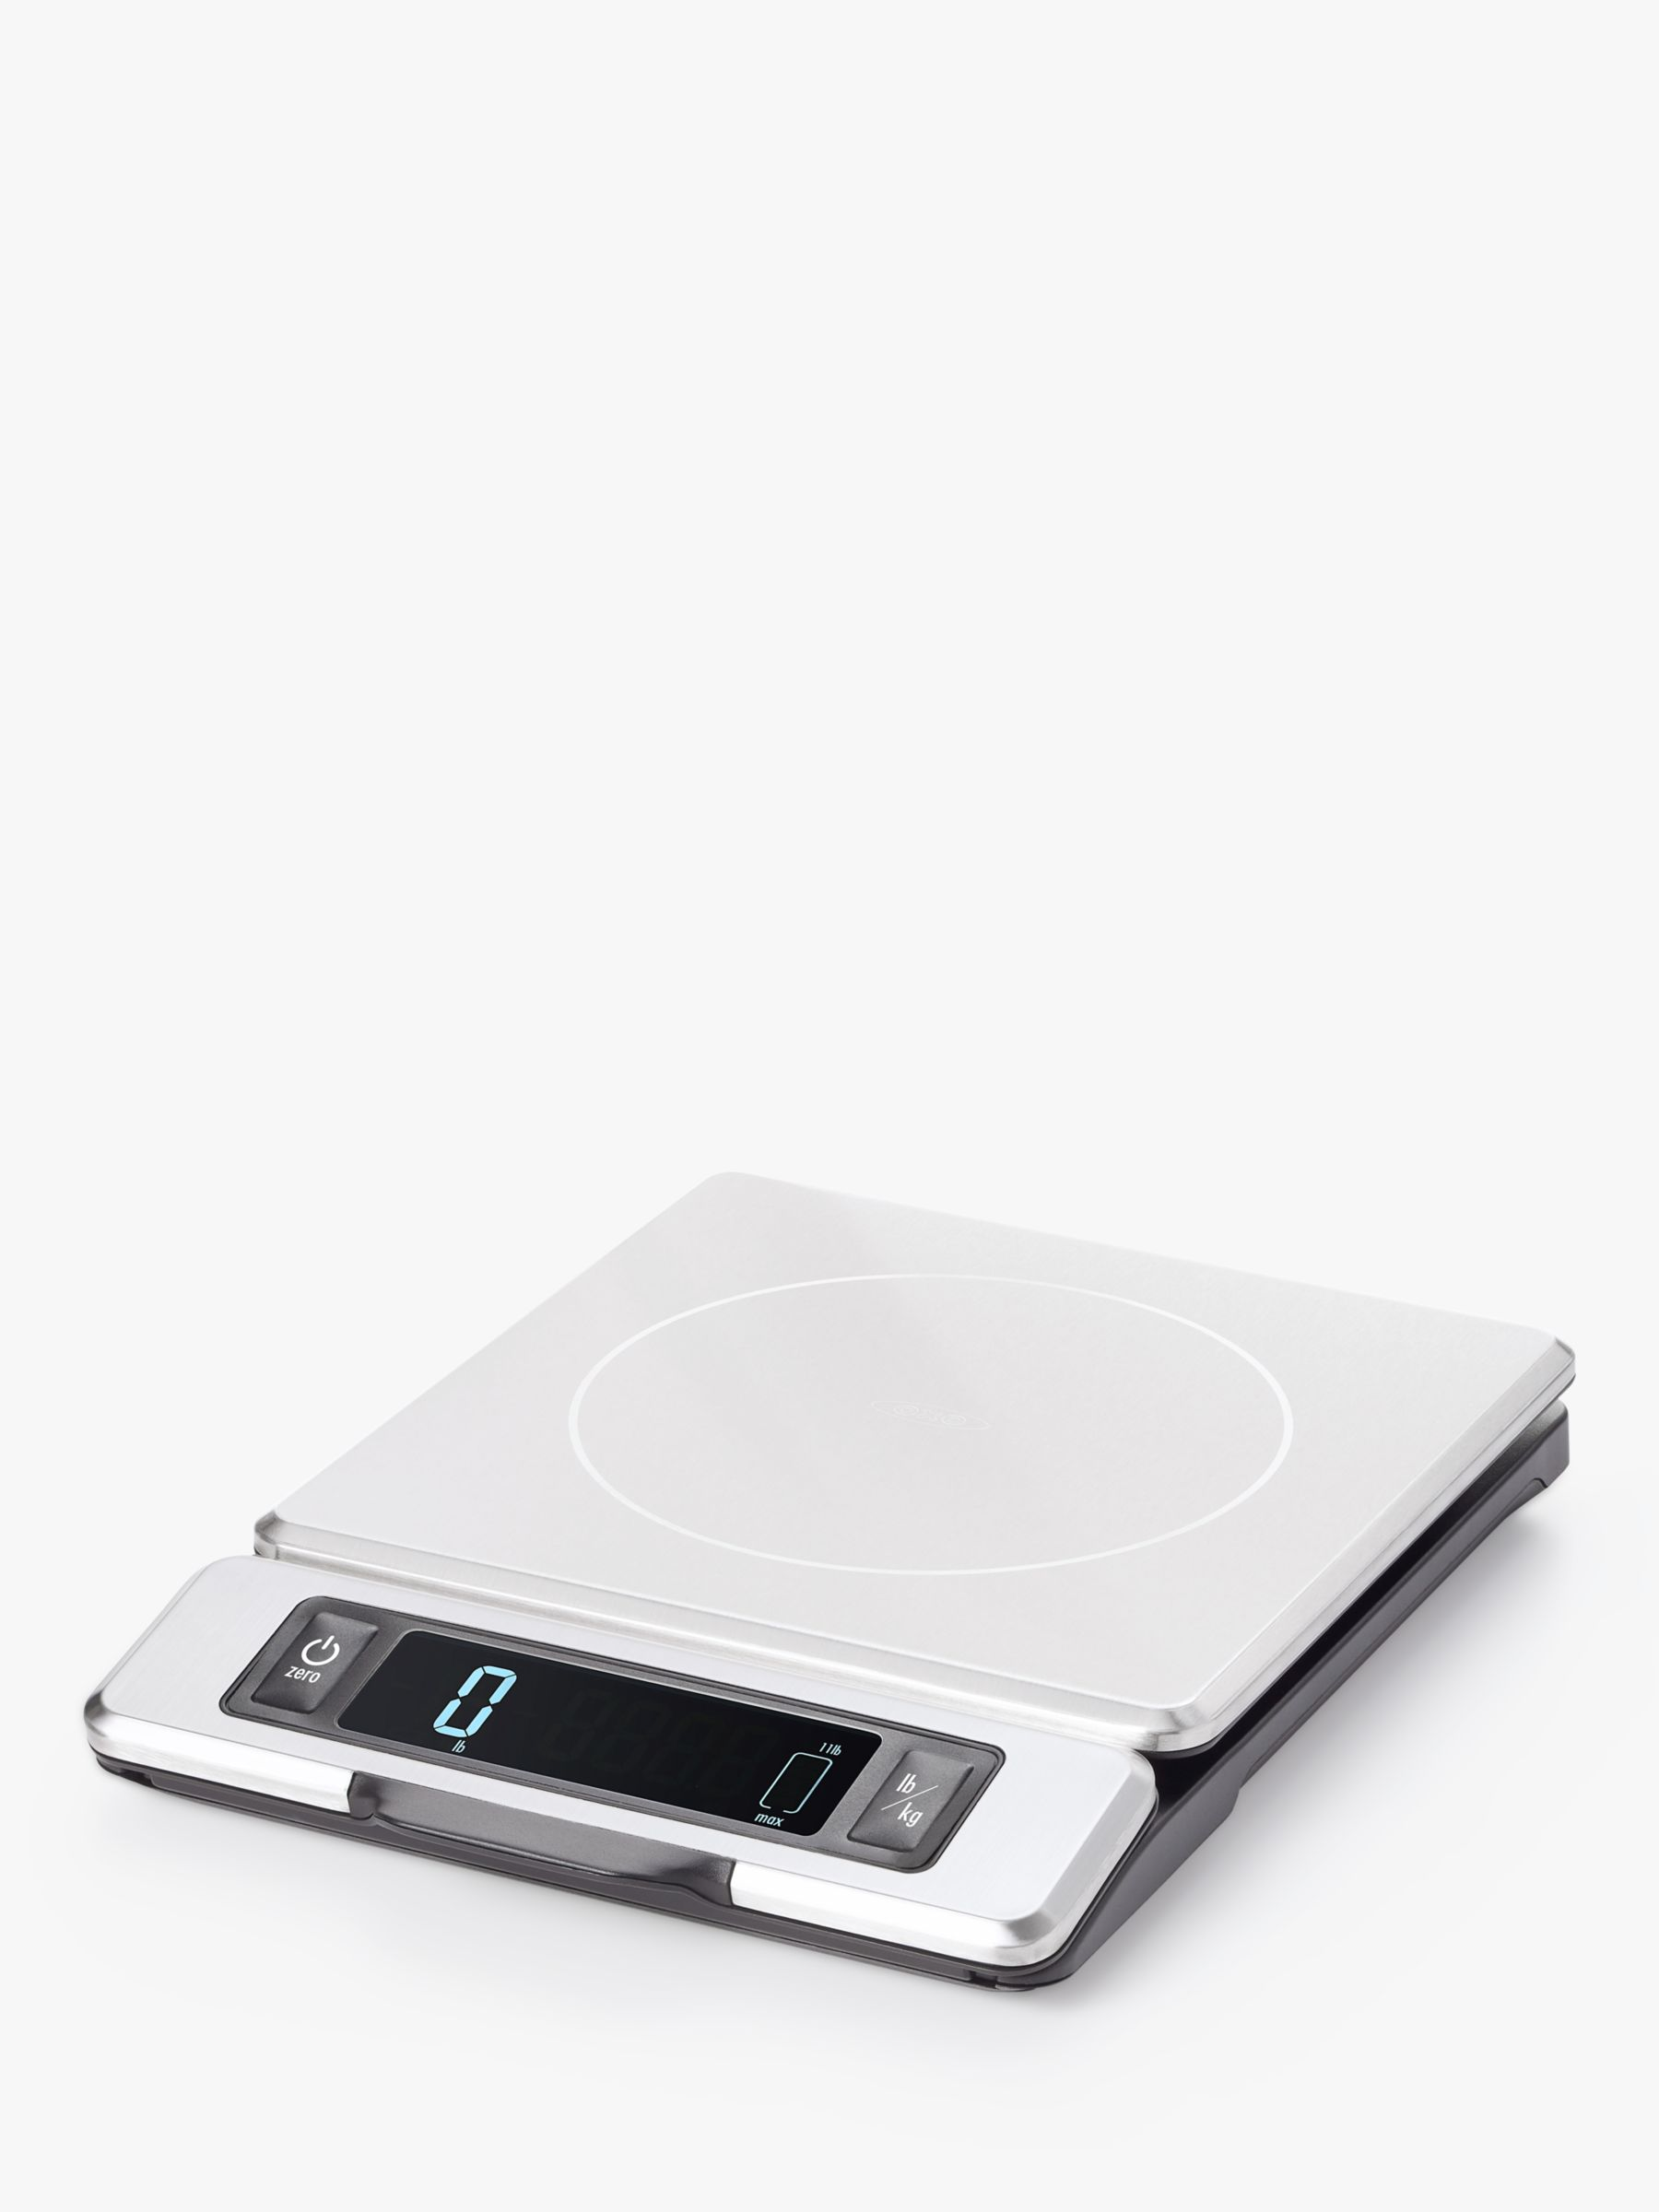 Oxo OXO Good Grips Stainless Steel Electronic Kitchen Scale, Silver, 5kg